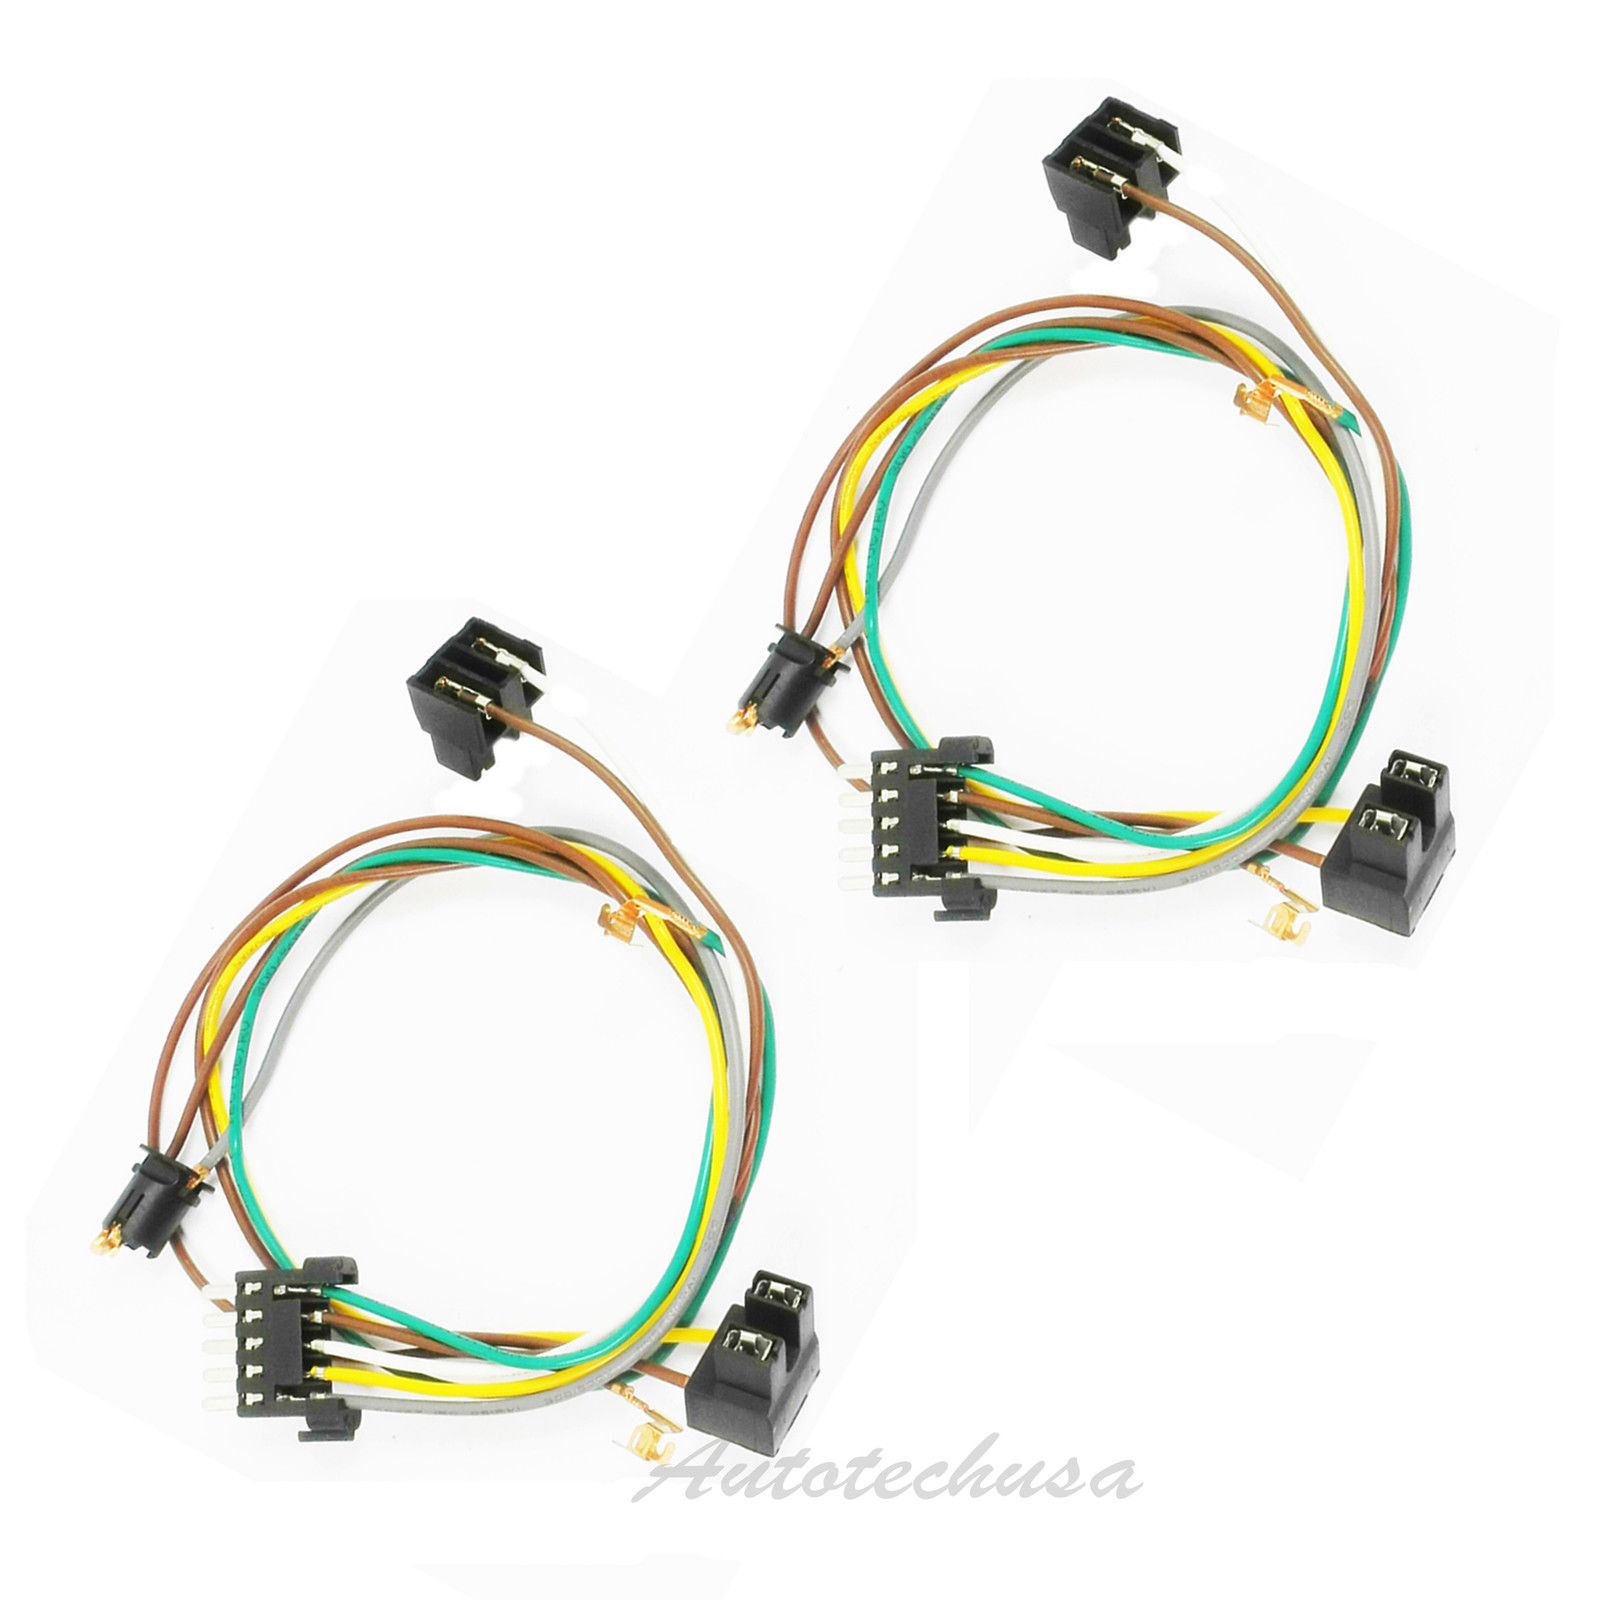 hight resolution of details about left right headlight wire harness connector kit for dc111 mercedes w203 c320